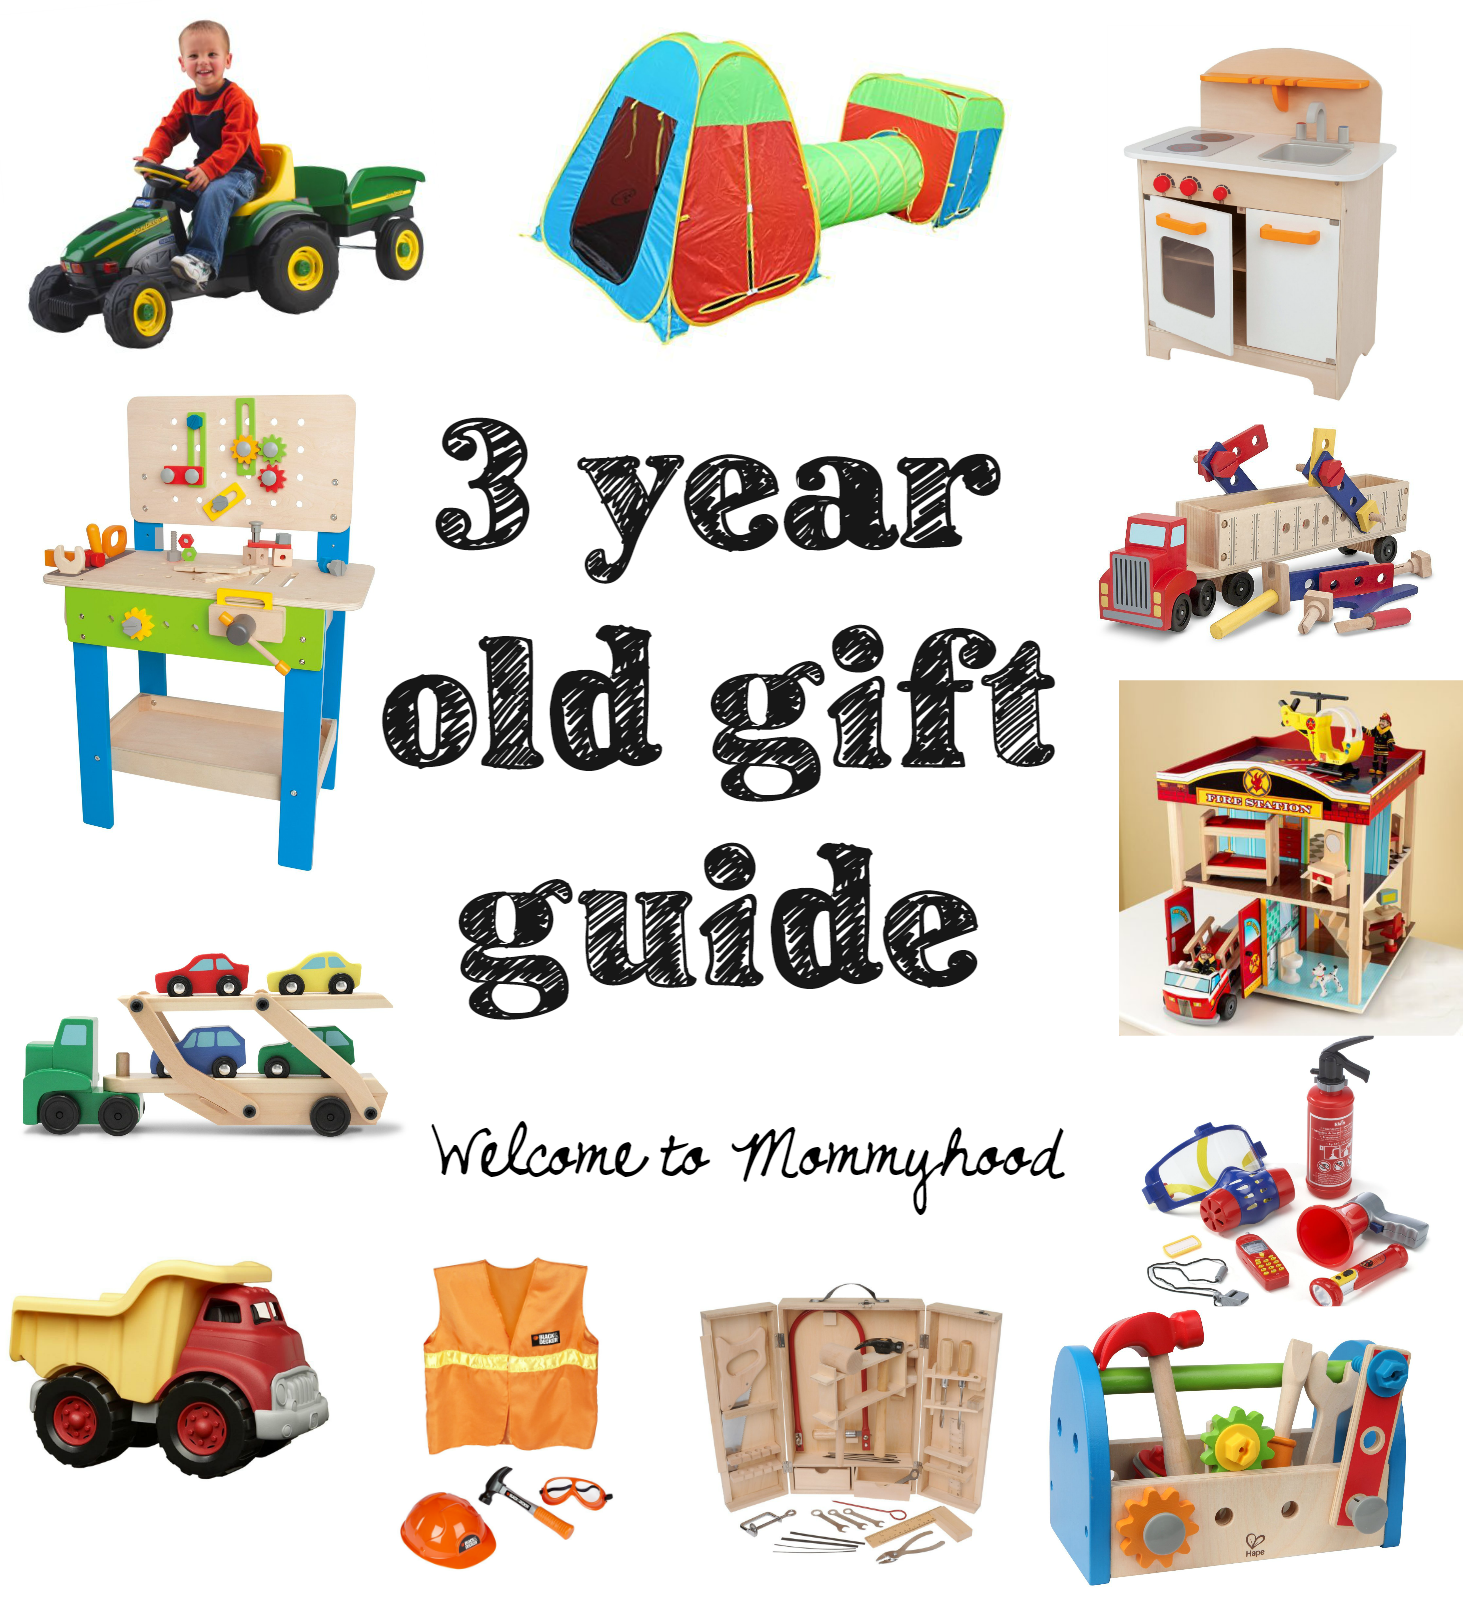 Gift guide for three year old boys from Wel e to Mommyhood